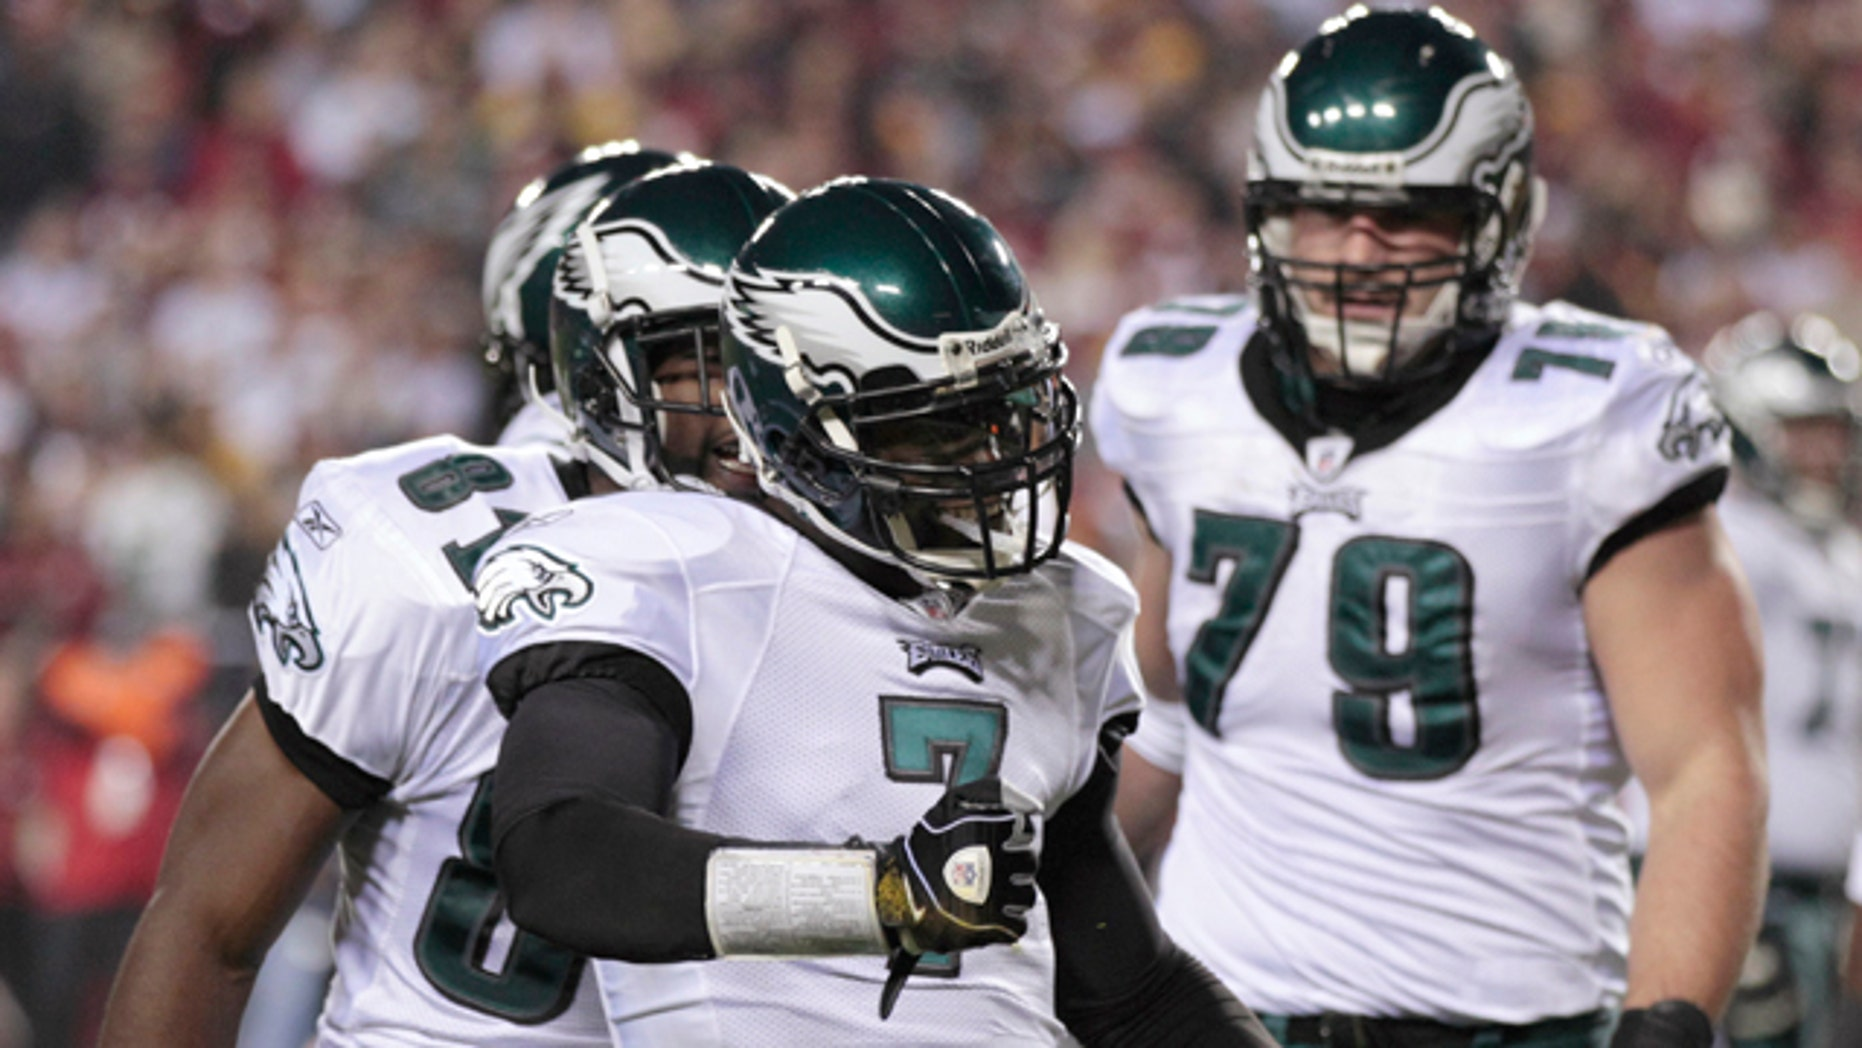 Nov. 15: Philadelphia Eagles quarterback Michael Vick (7) celebrates after scoring a rushing touchdown against the Washington Redskins during the first half of an NFL football game in Landover, Md.